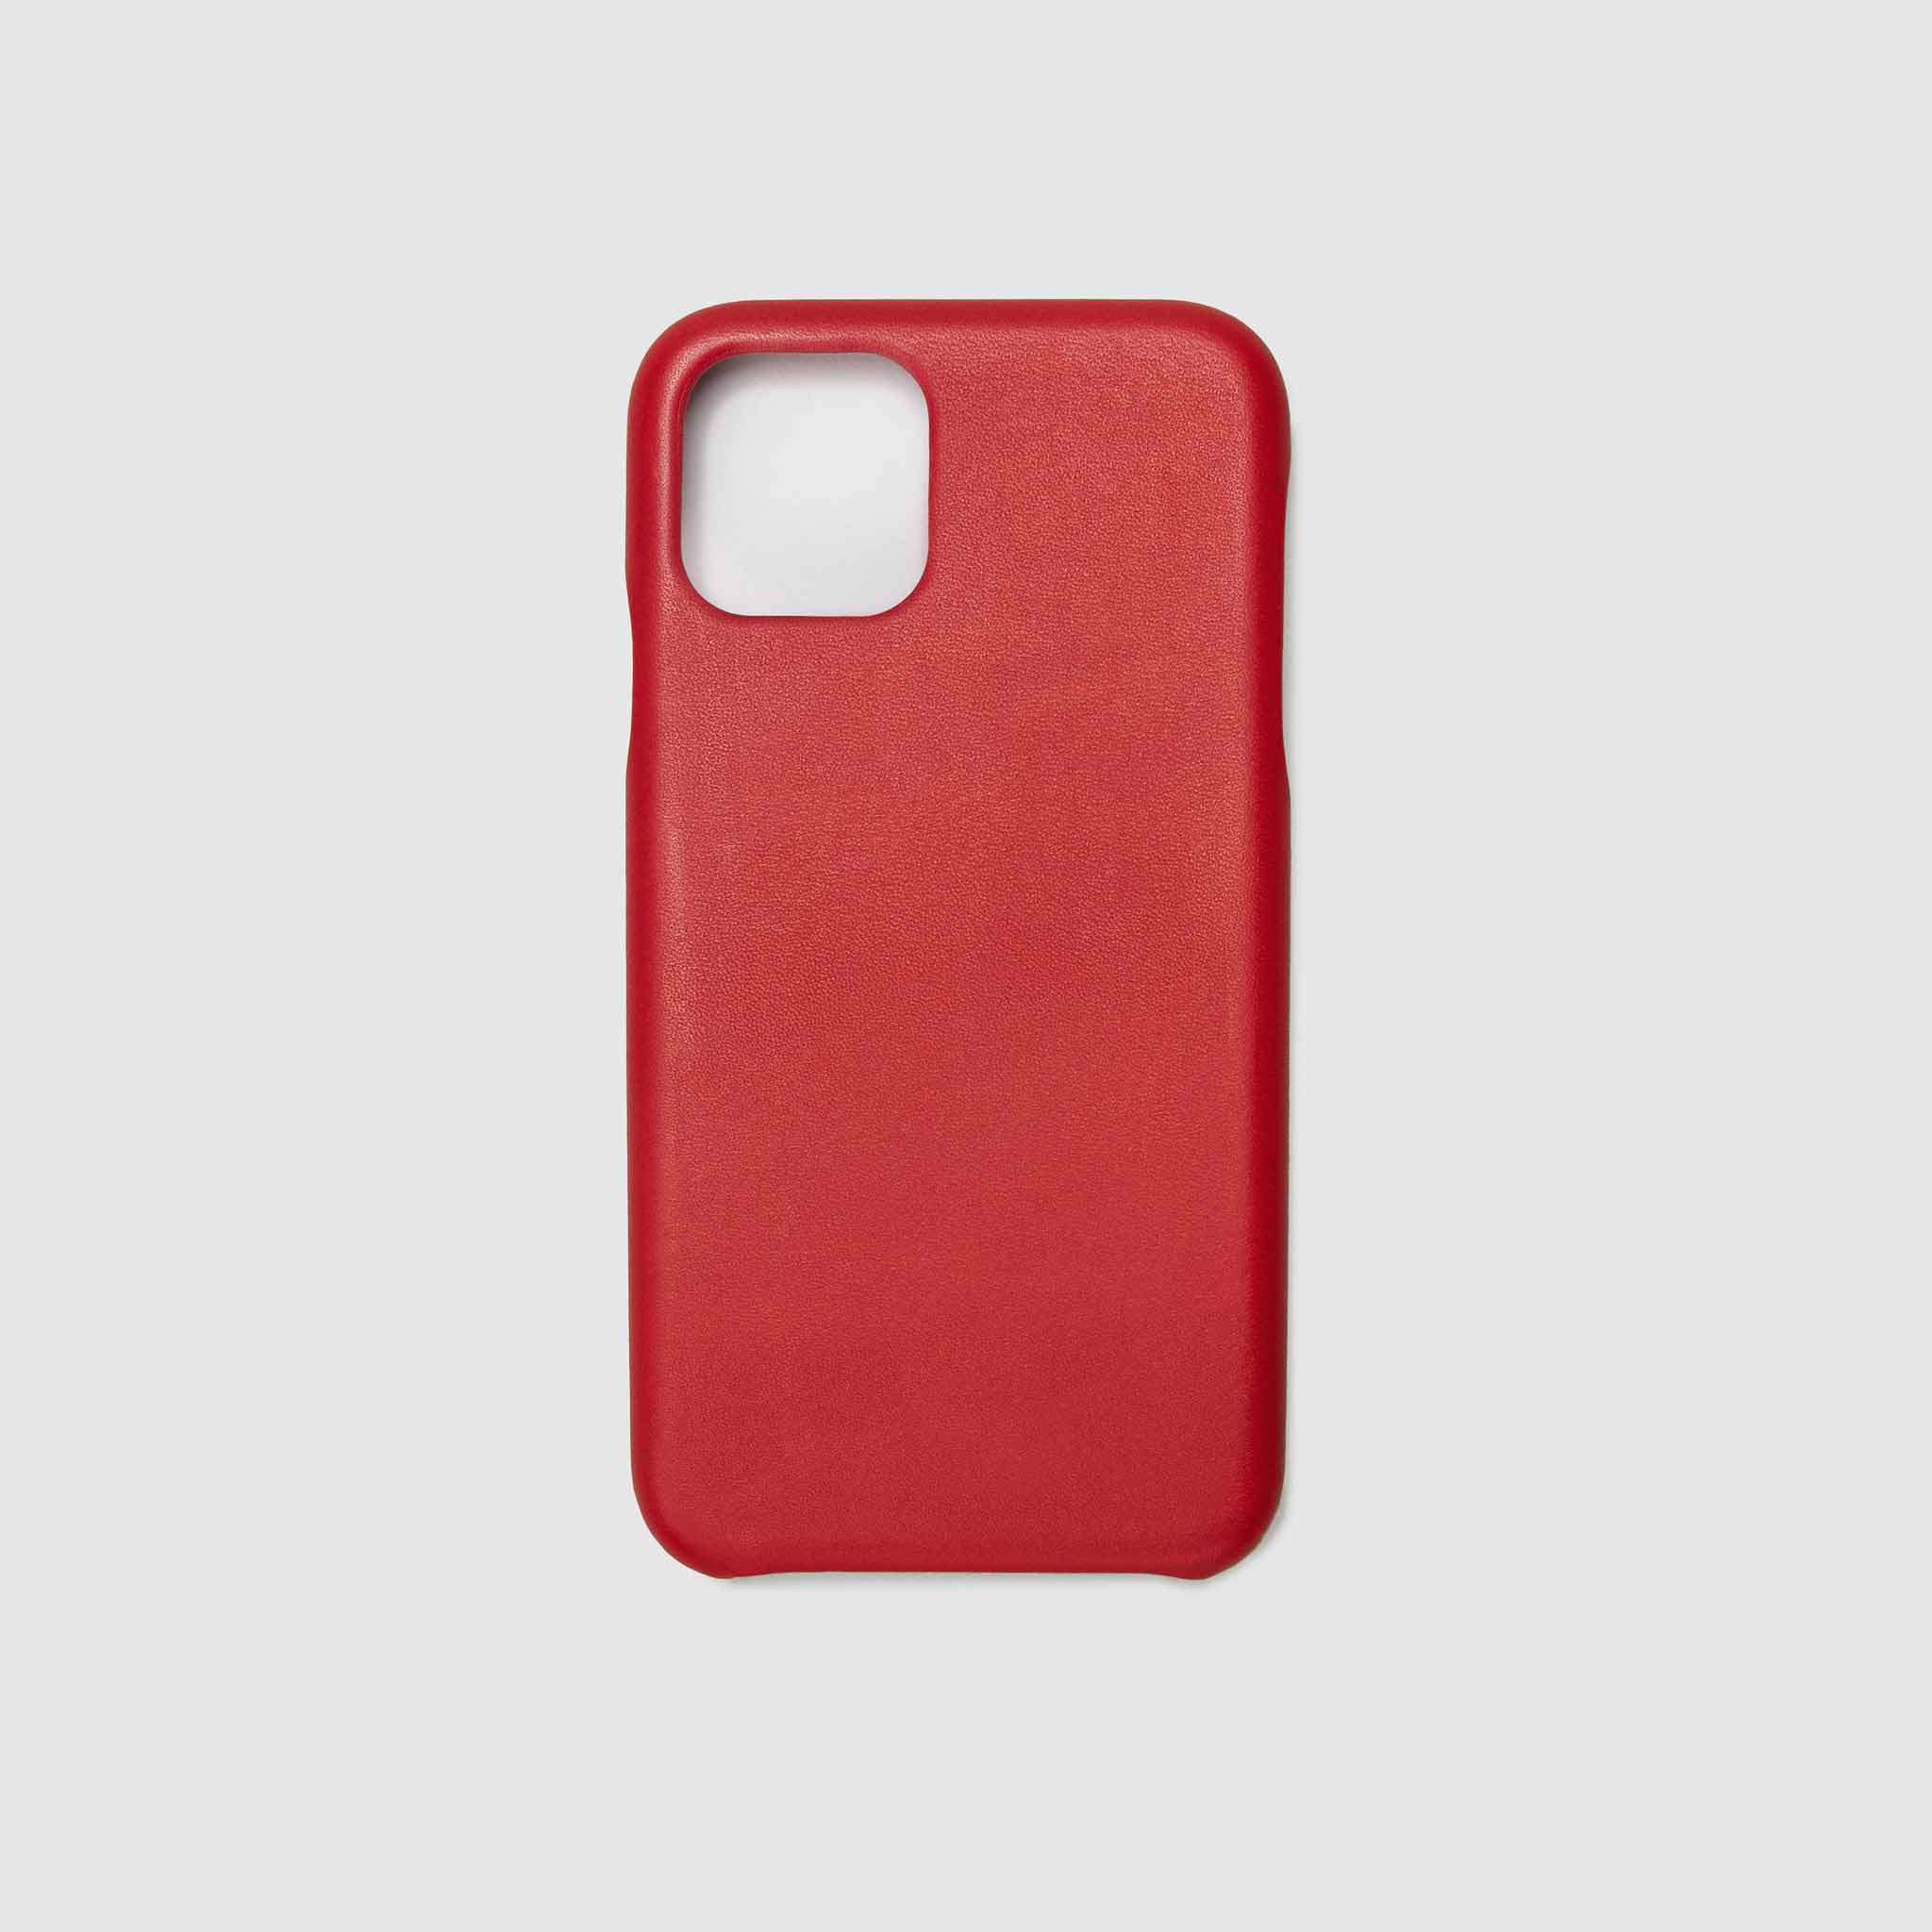 anson calder iphone case french calfskin 11 eleven pro max leather !iphone11pro-iphone11promax   _red